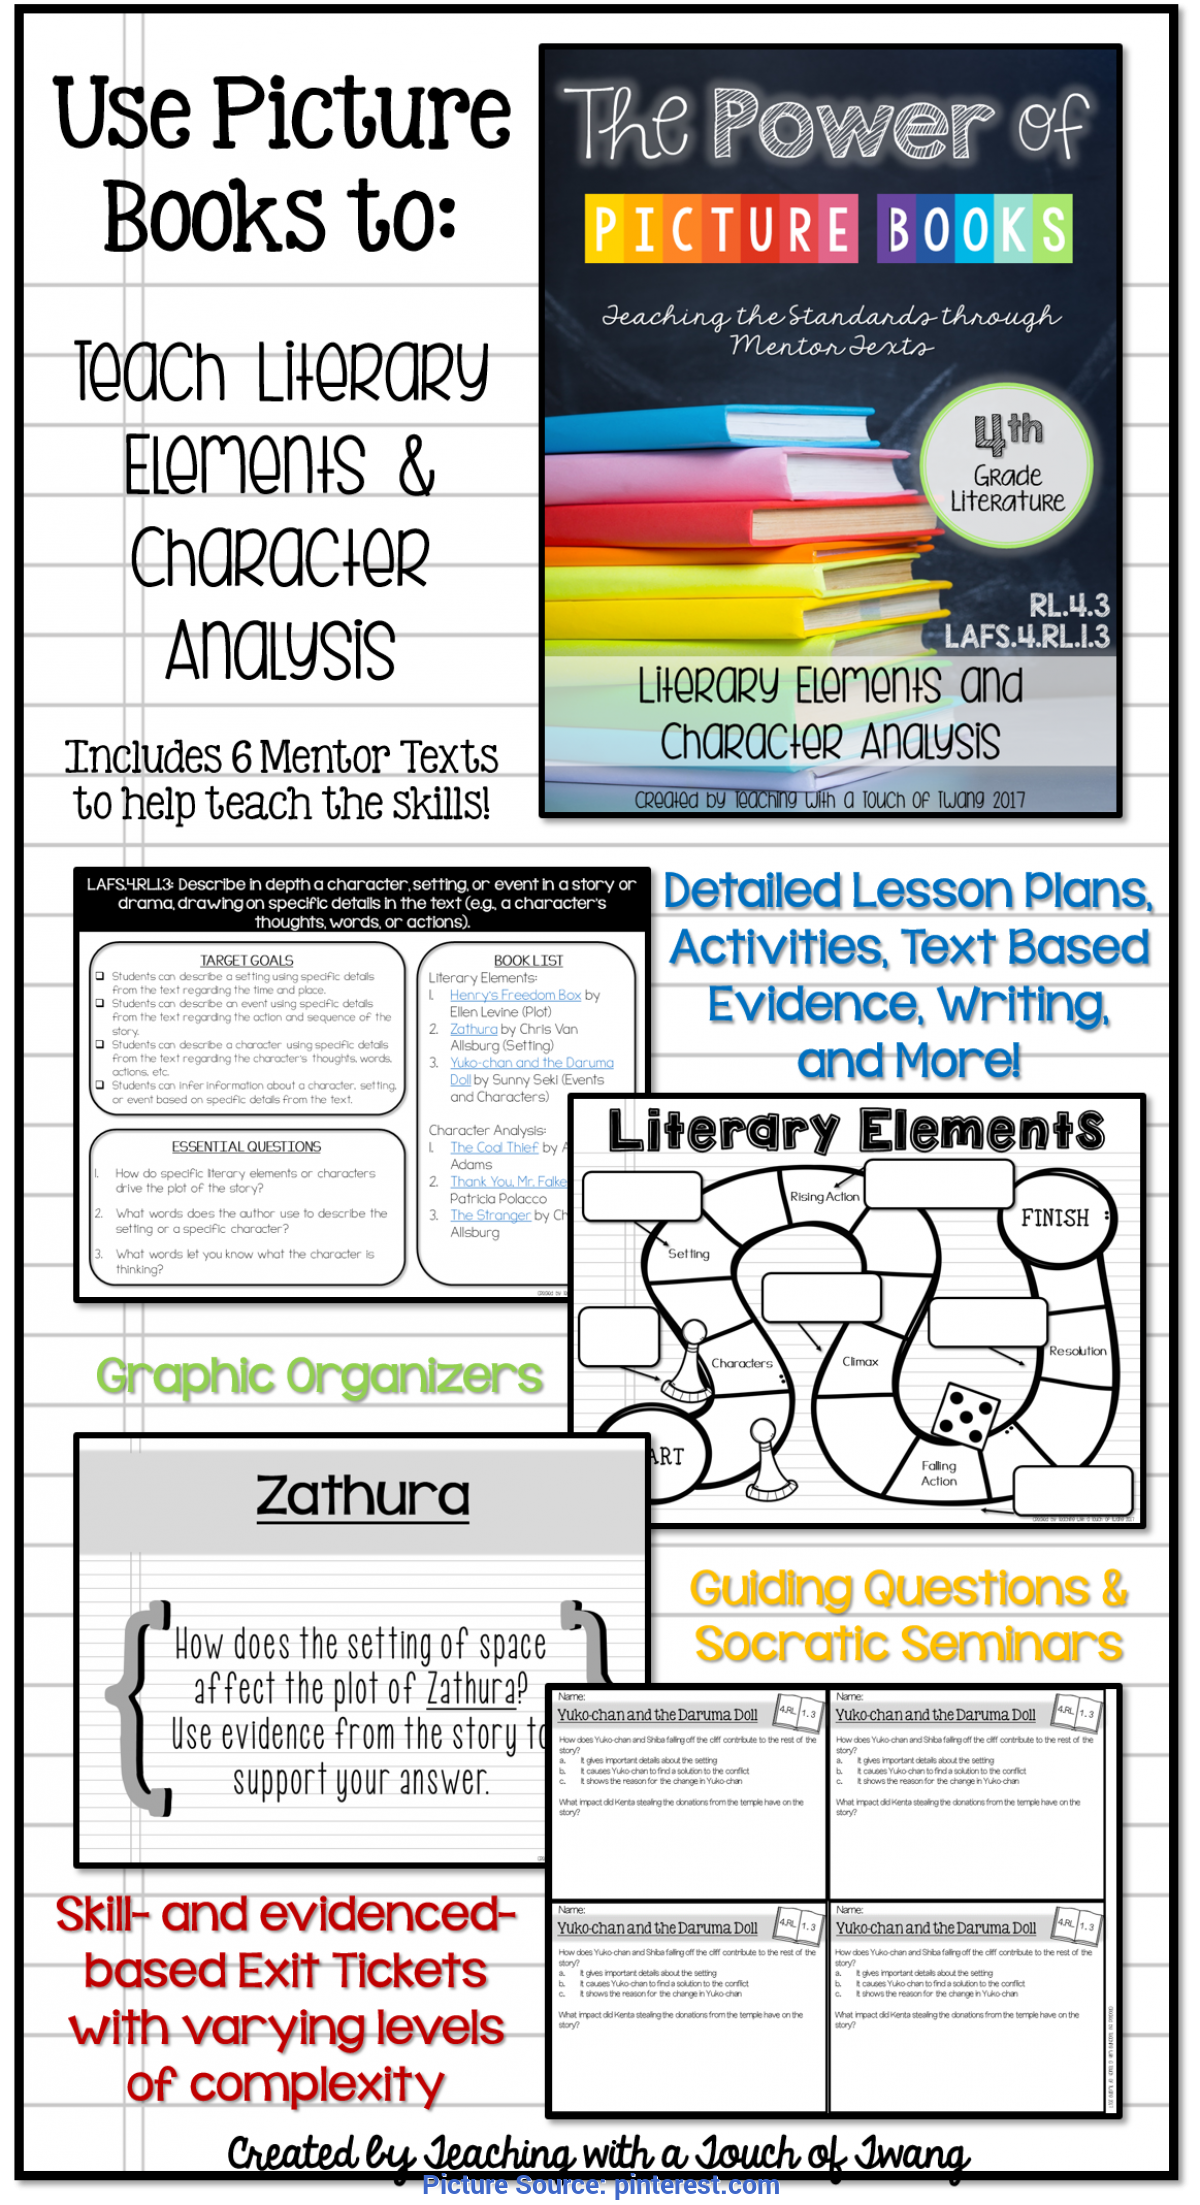 Valuable Power Of Reading Lesson Plans The Power Of Picture Books: Literary Elem. & Character Analysi